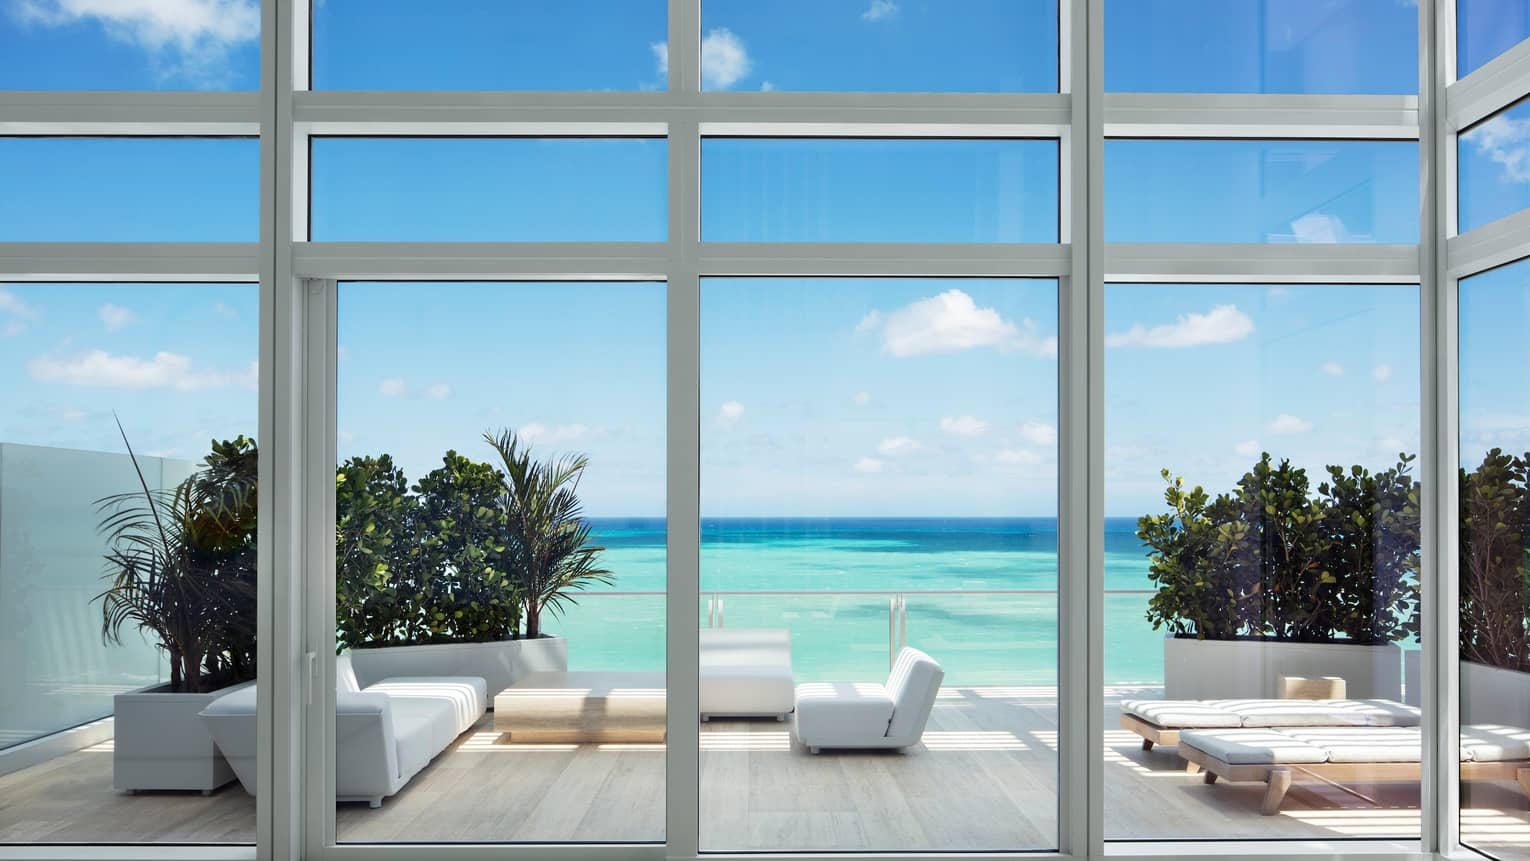 View from glass walls to large patio with modern white furniture, turquoise ocean